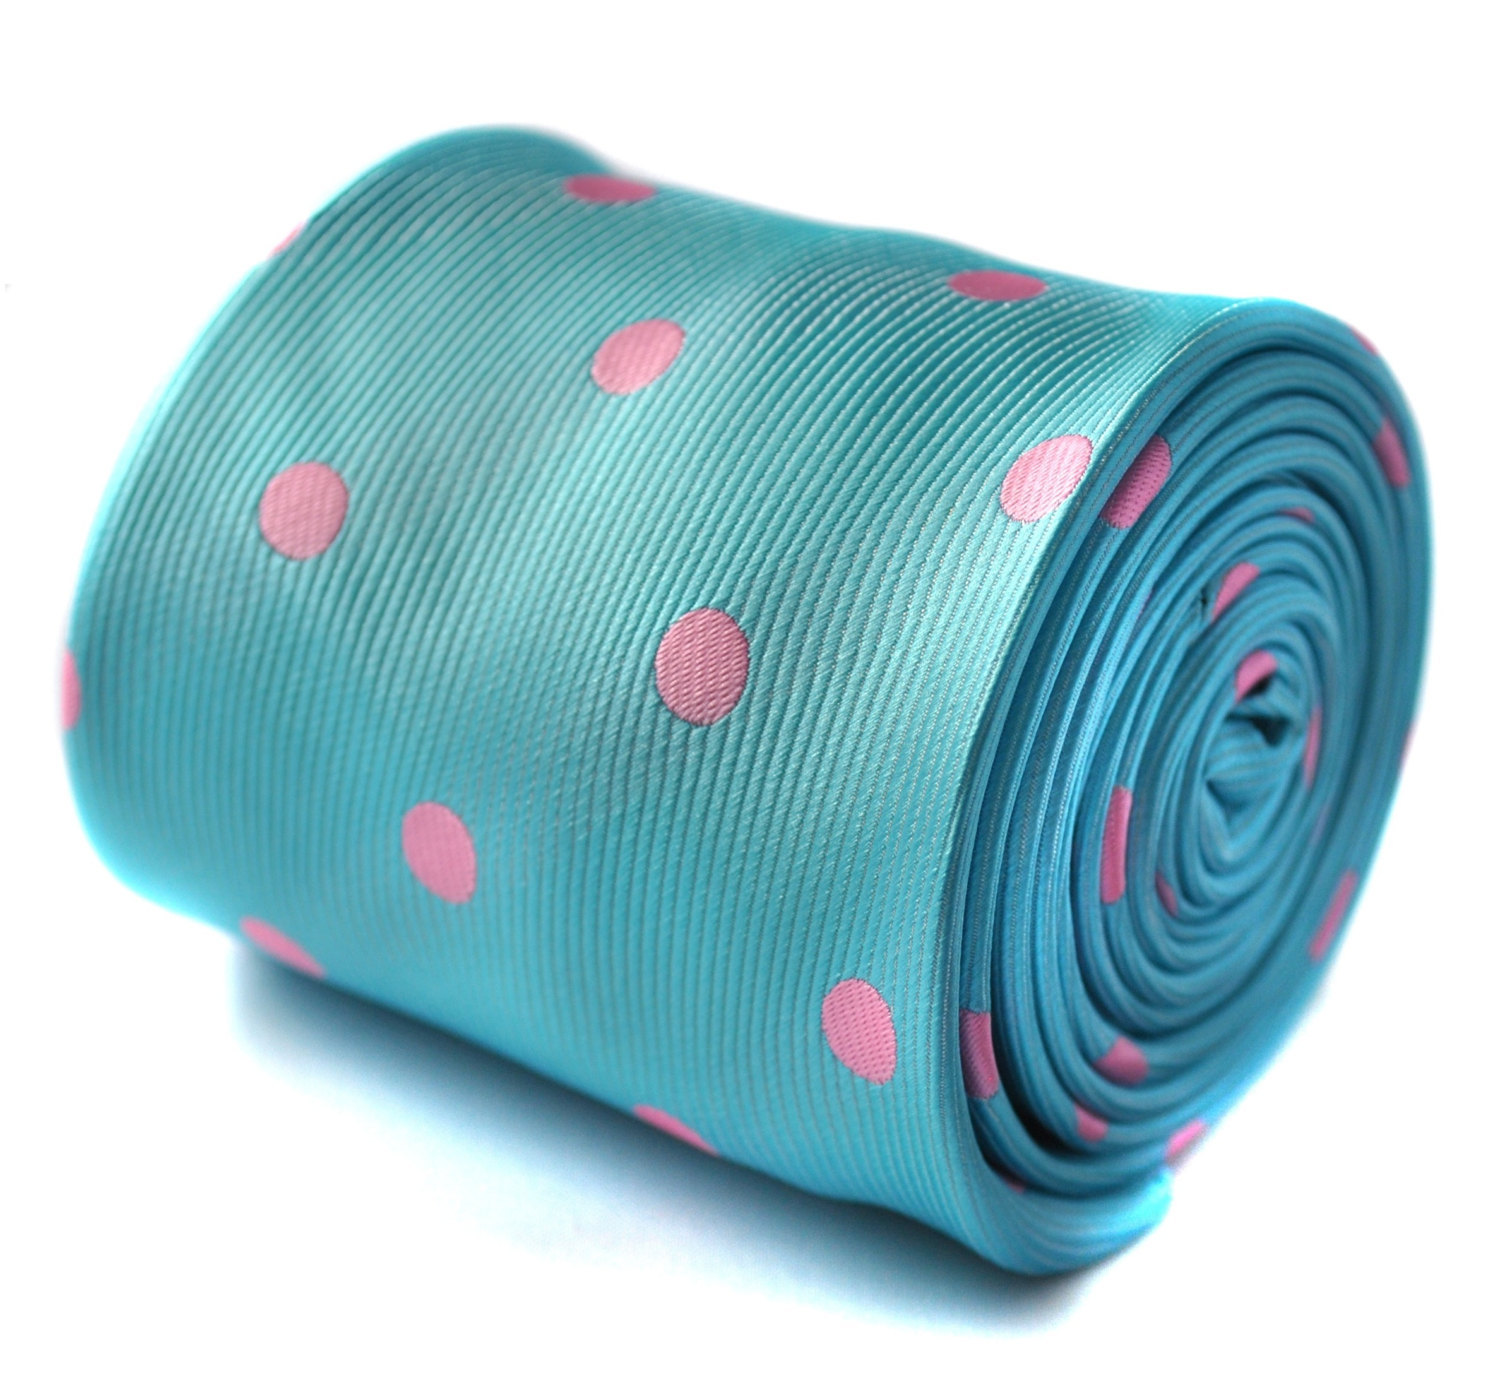 turquoise and pink polka spot tie with signature floral design to the rear by Fr